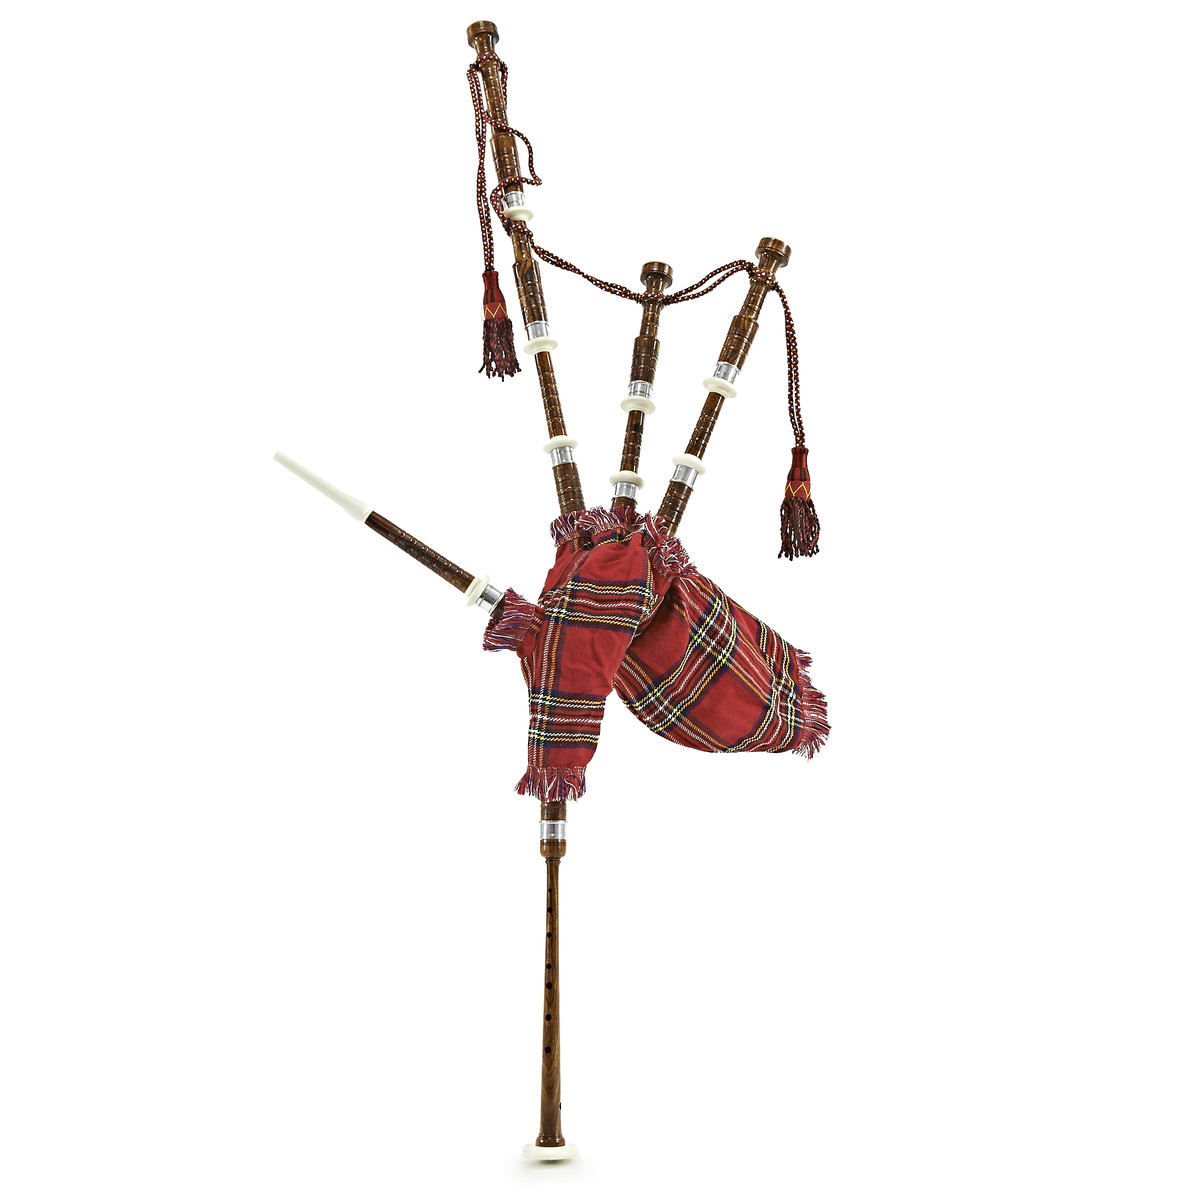 Image of Bagpipes by Gear4music Half Size Royal Stewart